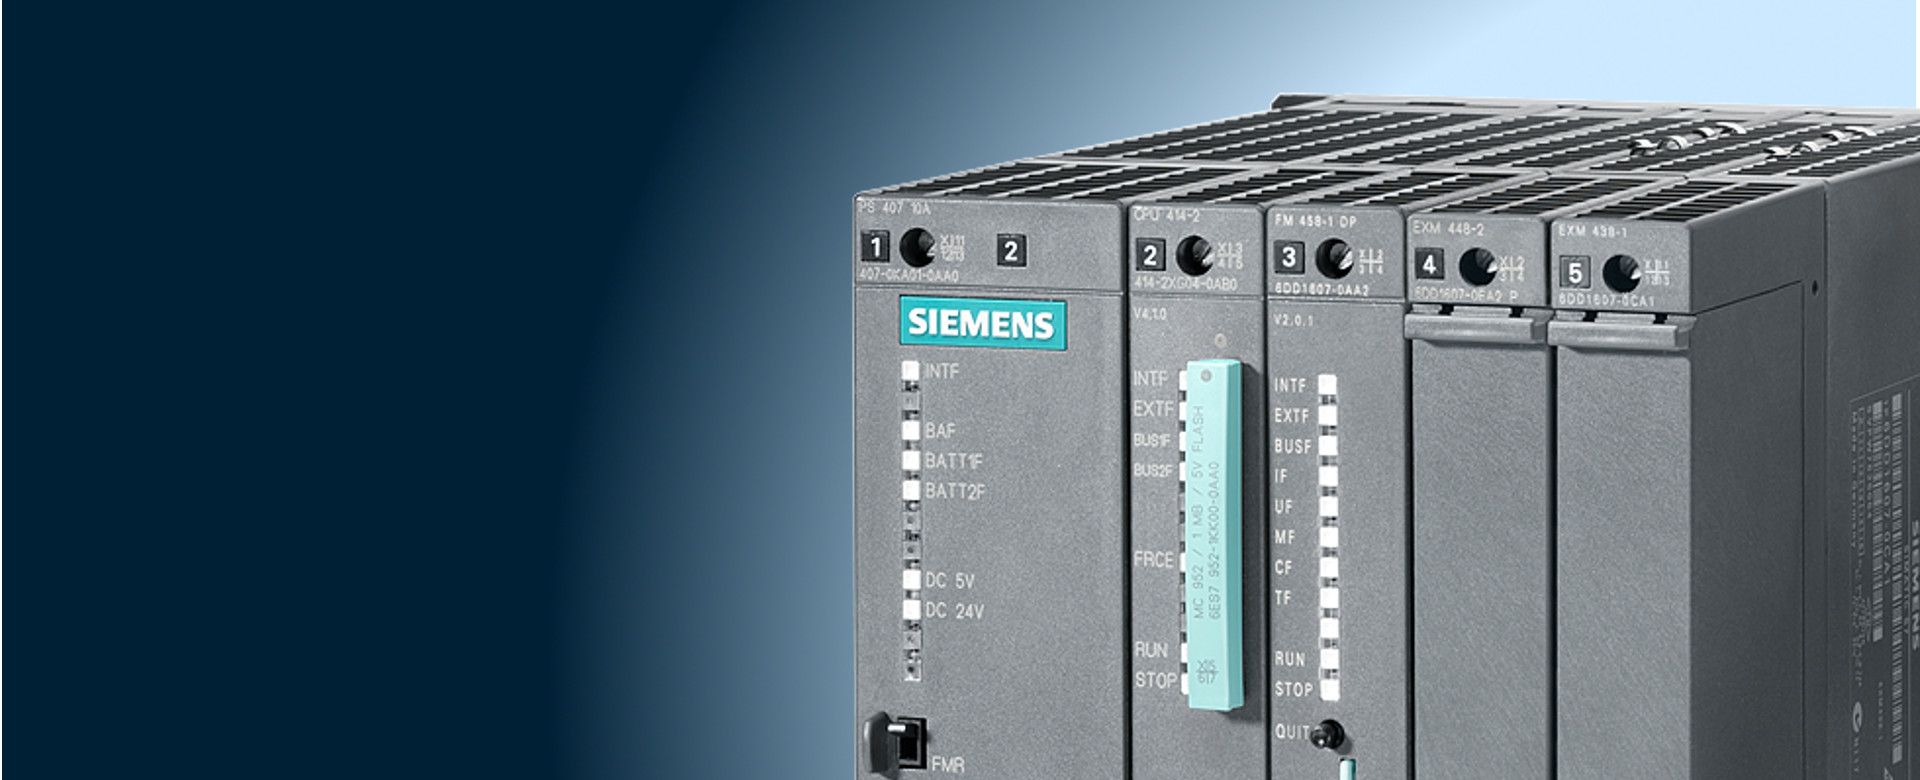 SIMATIC S7-400 - BRAUMAT Features